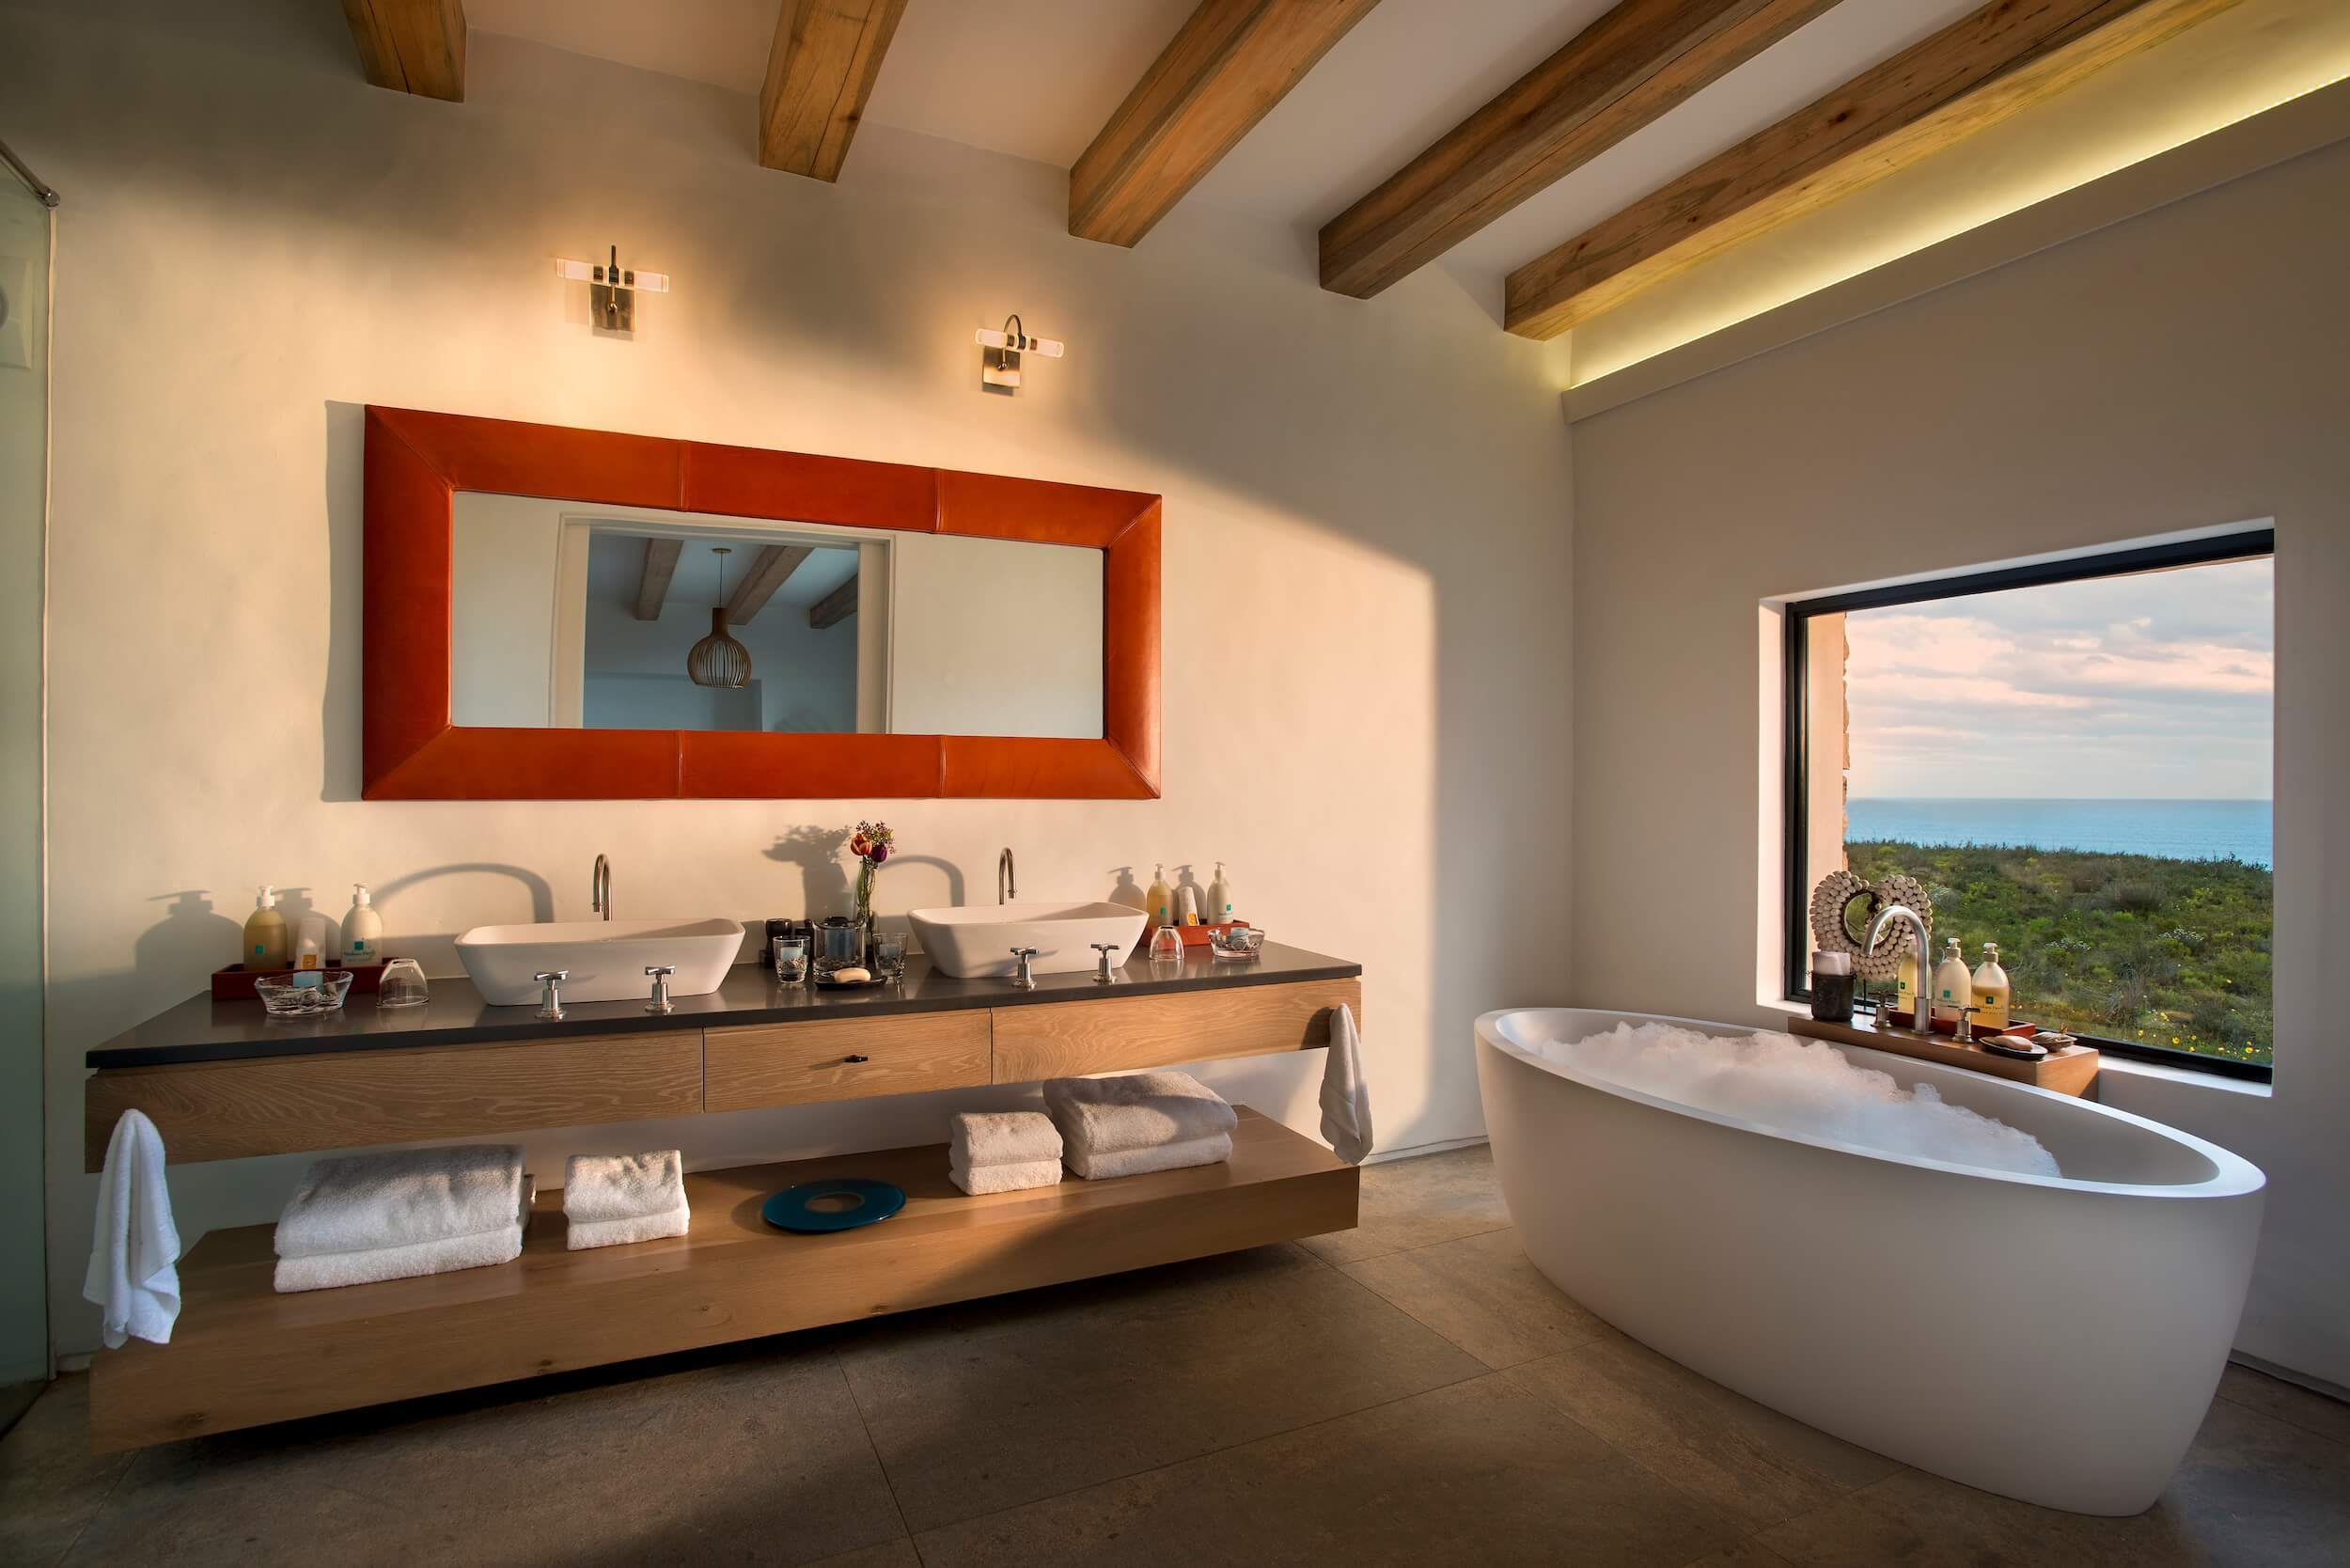 Morukuru Ocean House - bathroom with a view.JPG